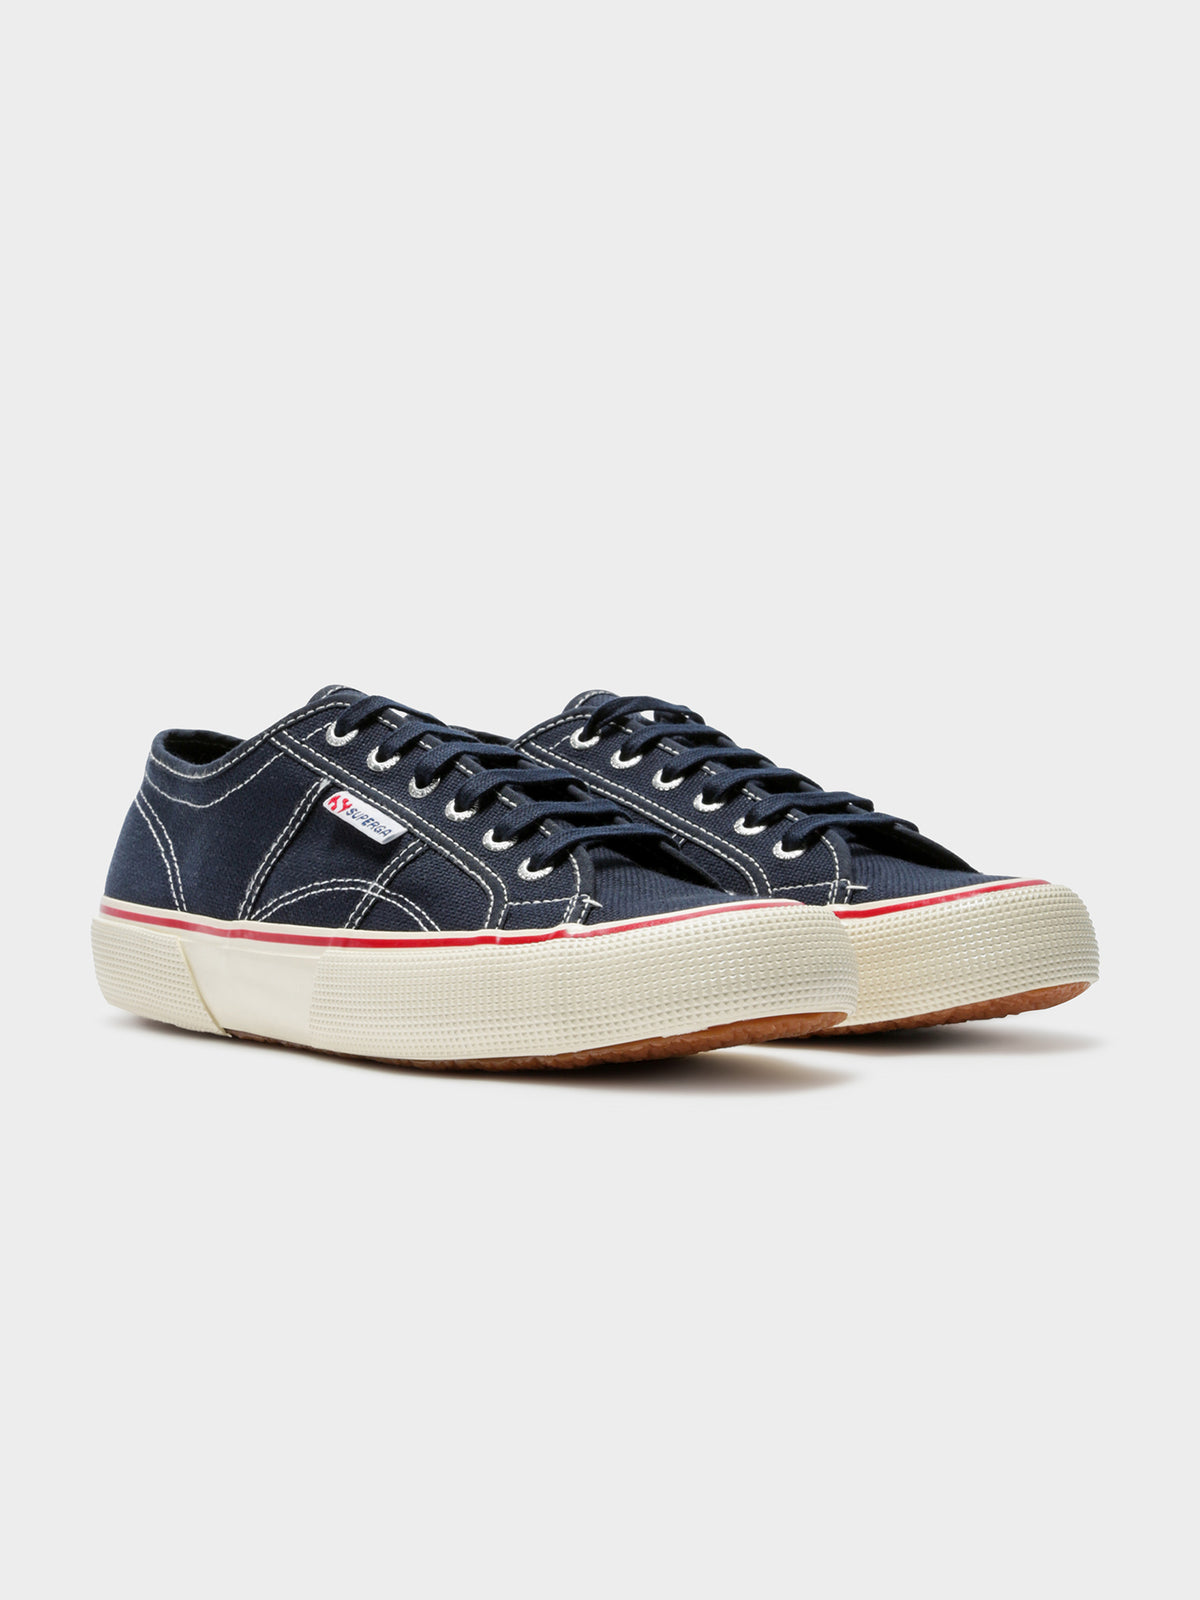 Mens 2490 Cotu Sneakers in Navy & White